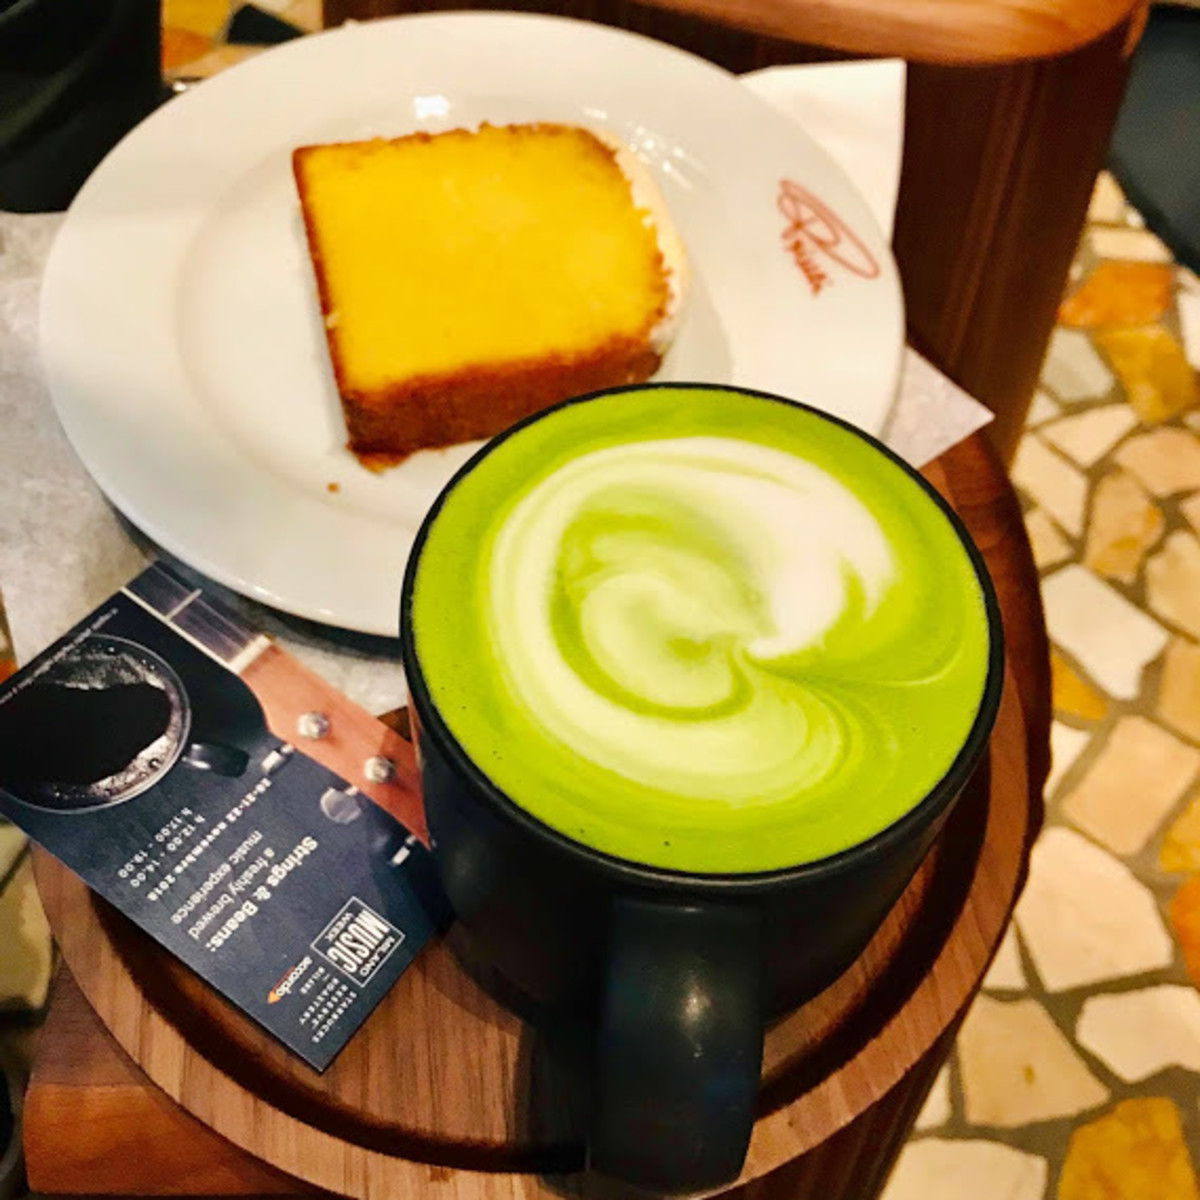 A matcha cappuccino and a lemon plumcake at the Starbucks Reserve Roastery of Milan